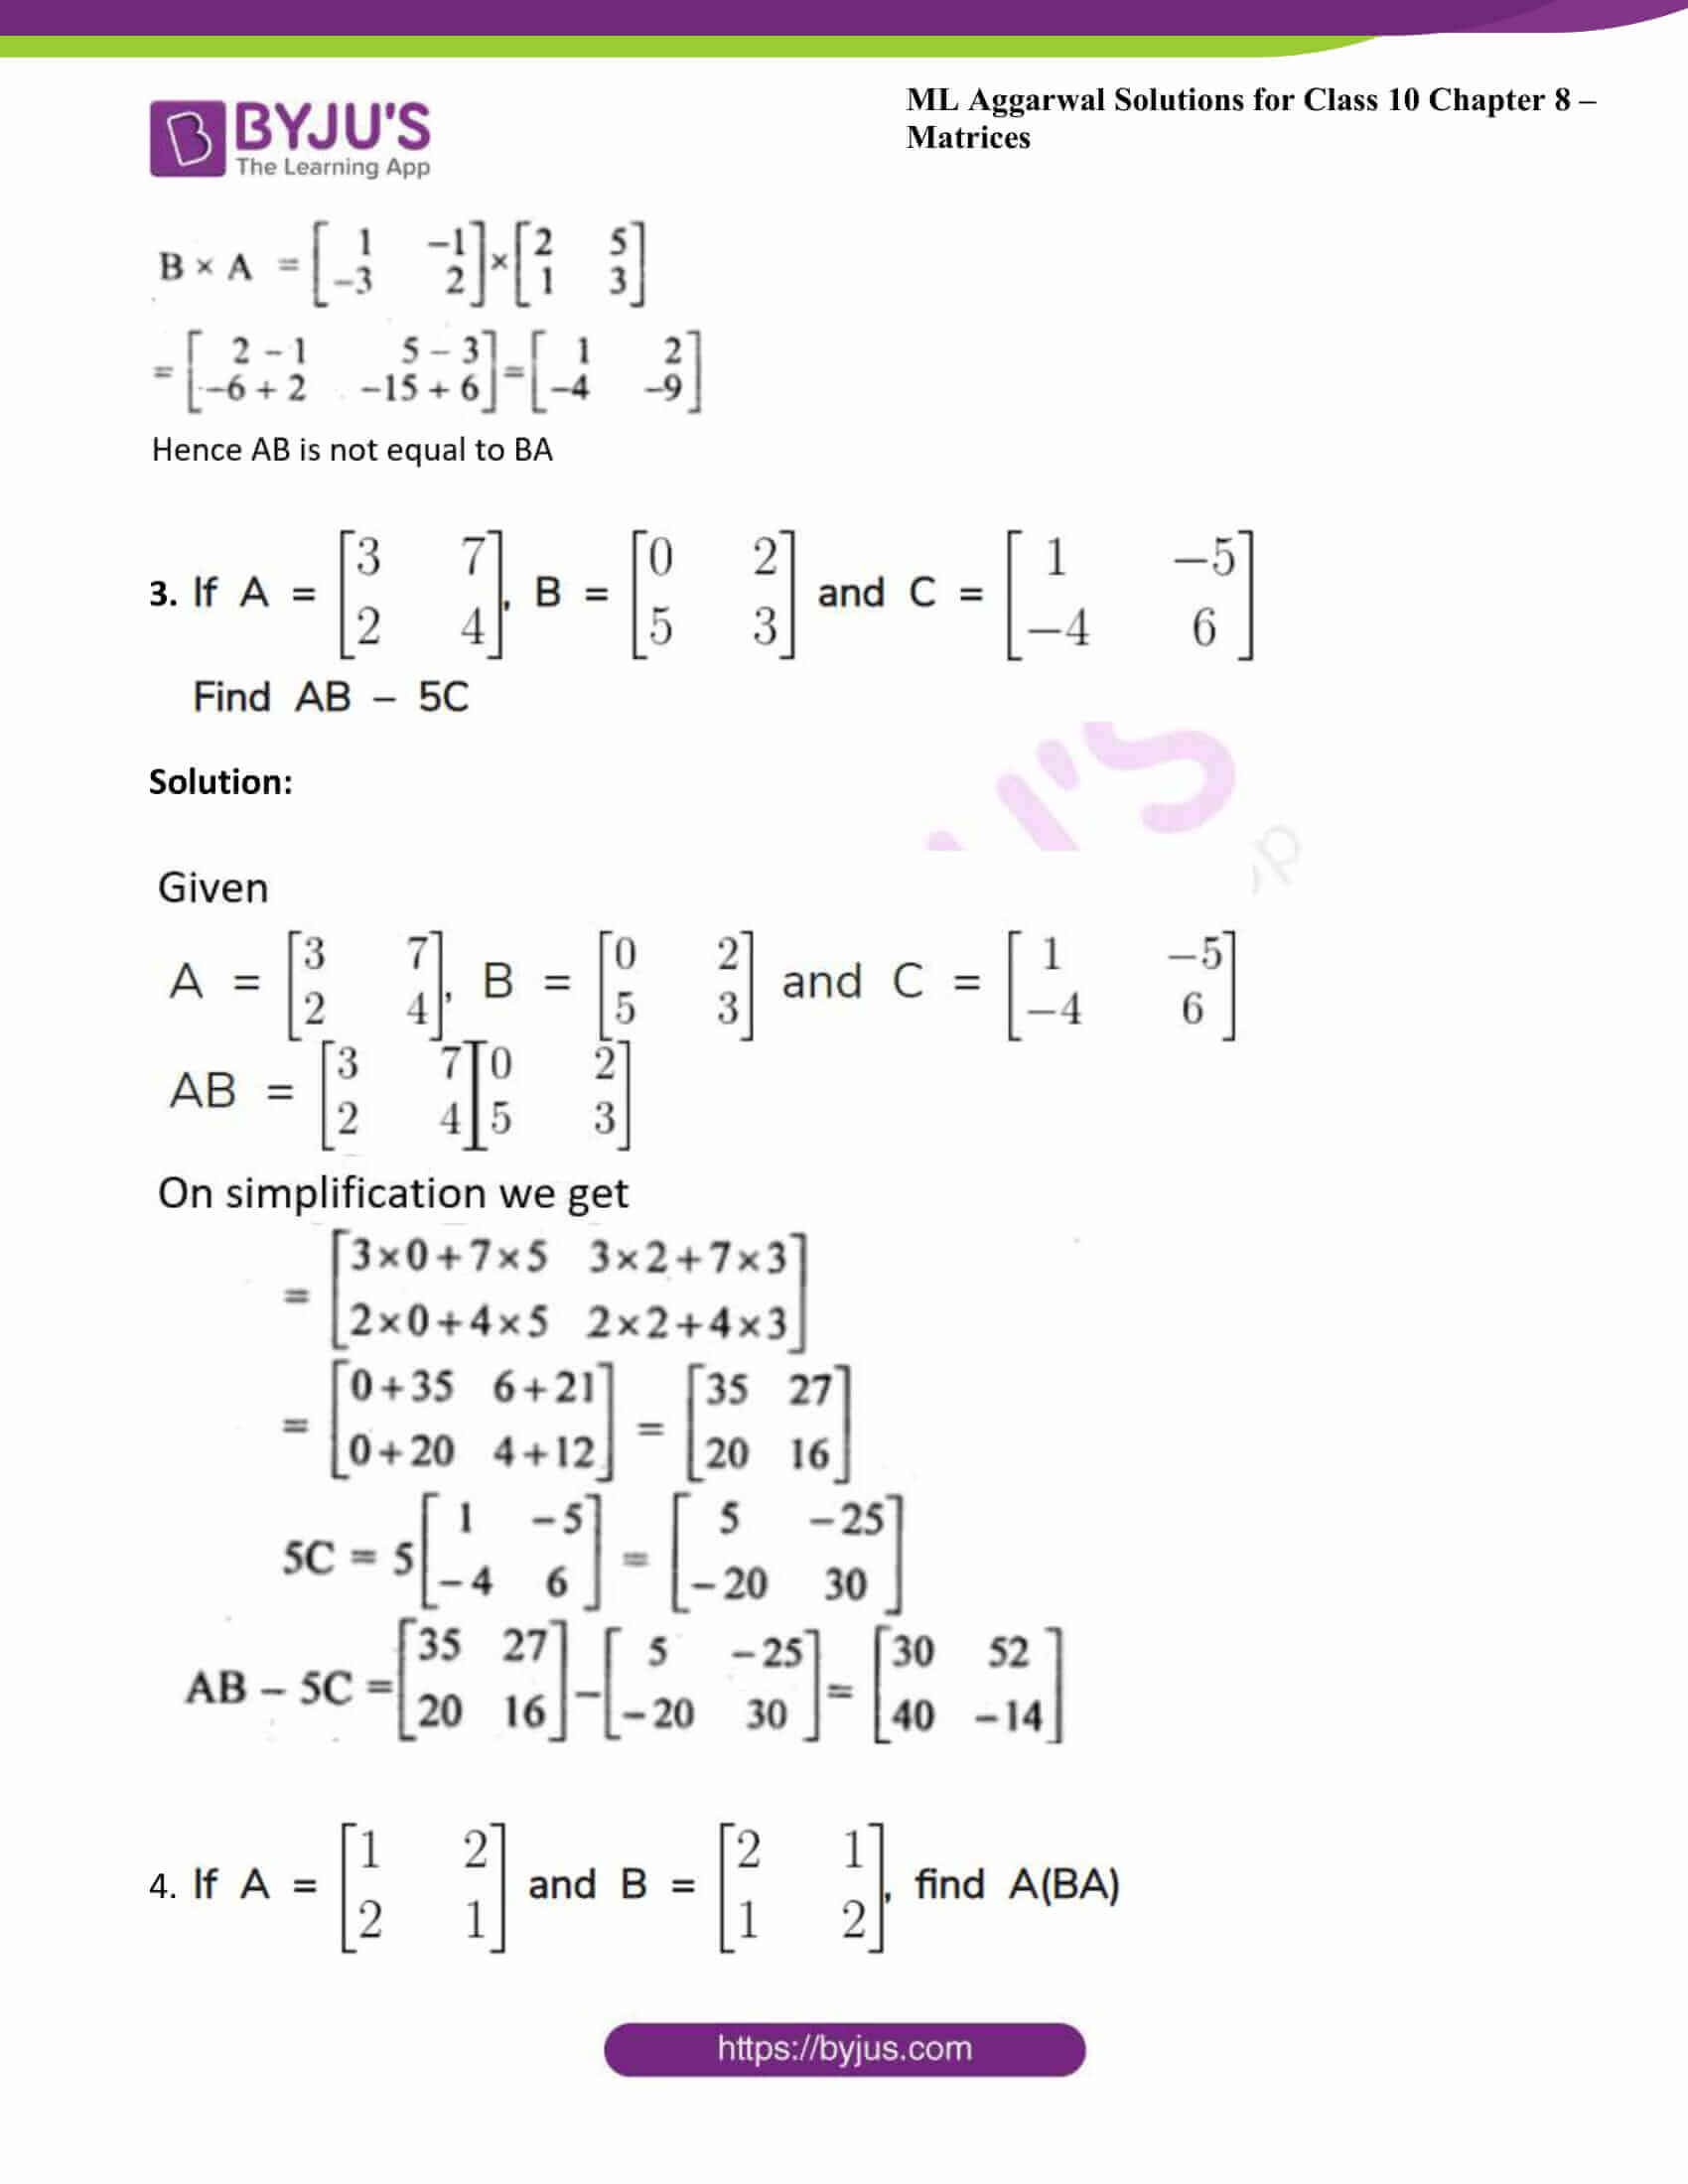 ml aggarwal solutions class 10 maths chapter 8 19